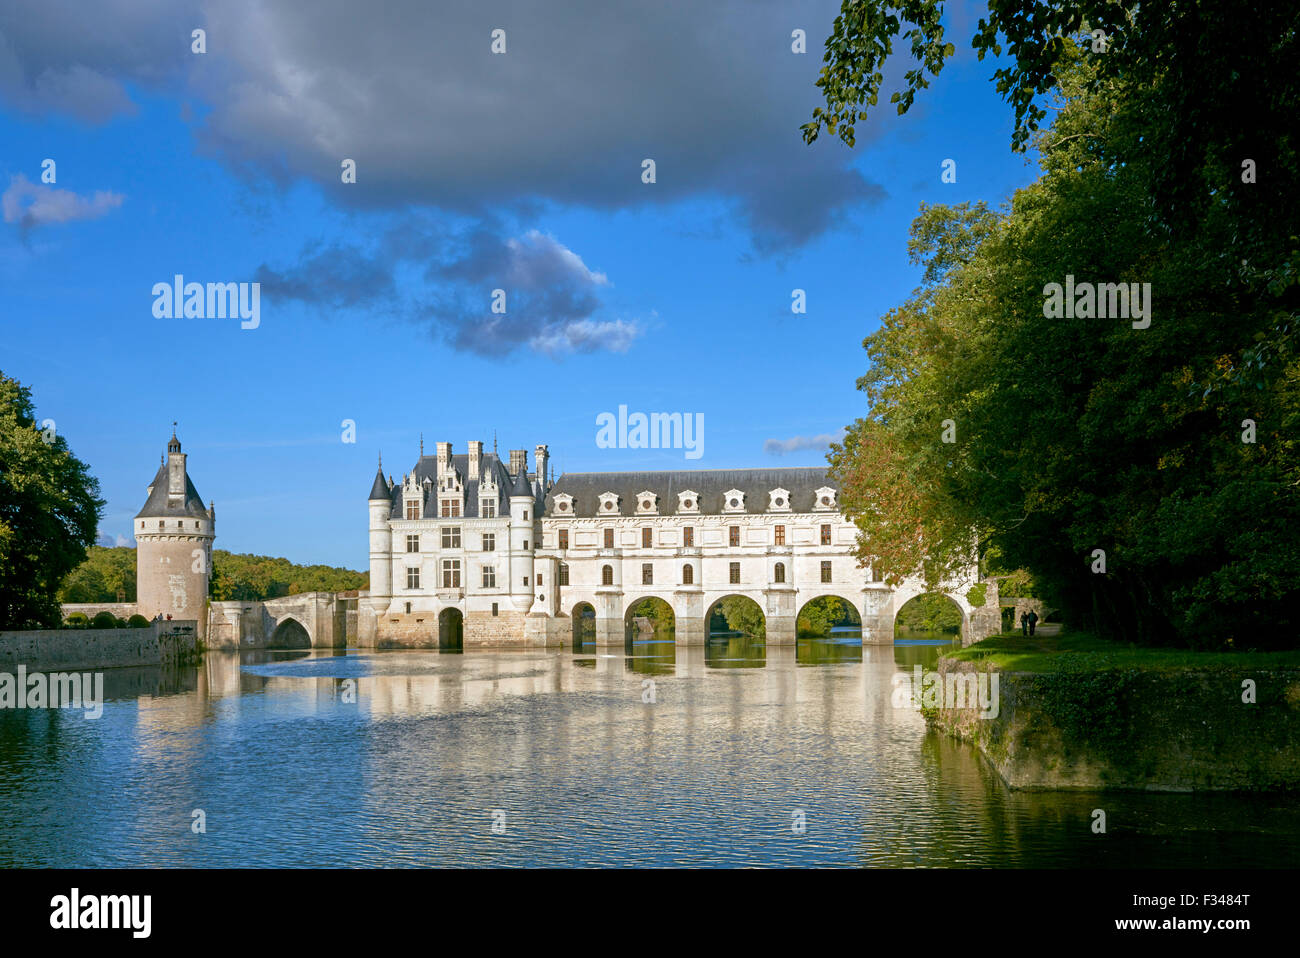 Château de Chenonceau and the River Cher, with couple walking on footpath. Chenonceaux, Indre-et-Loire, France. - Stock Image